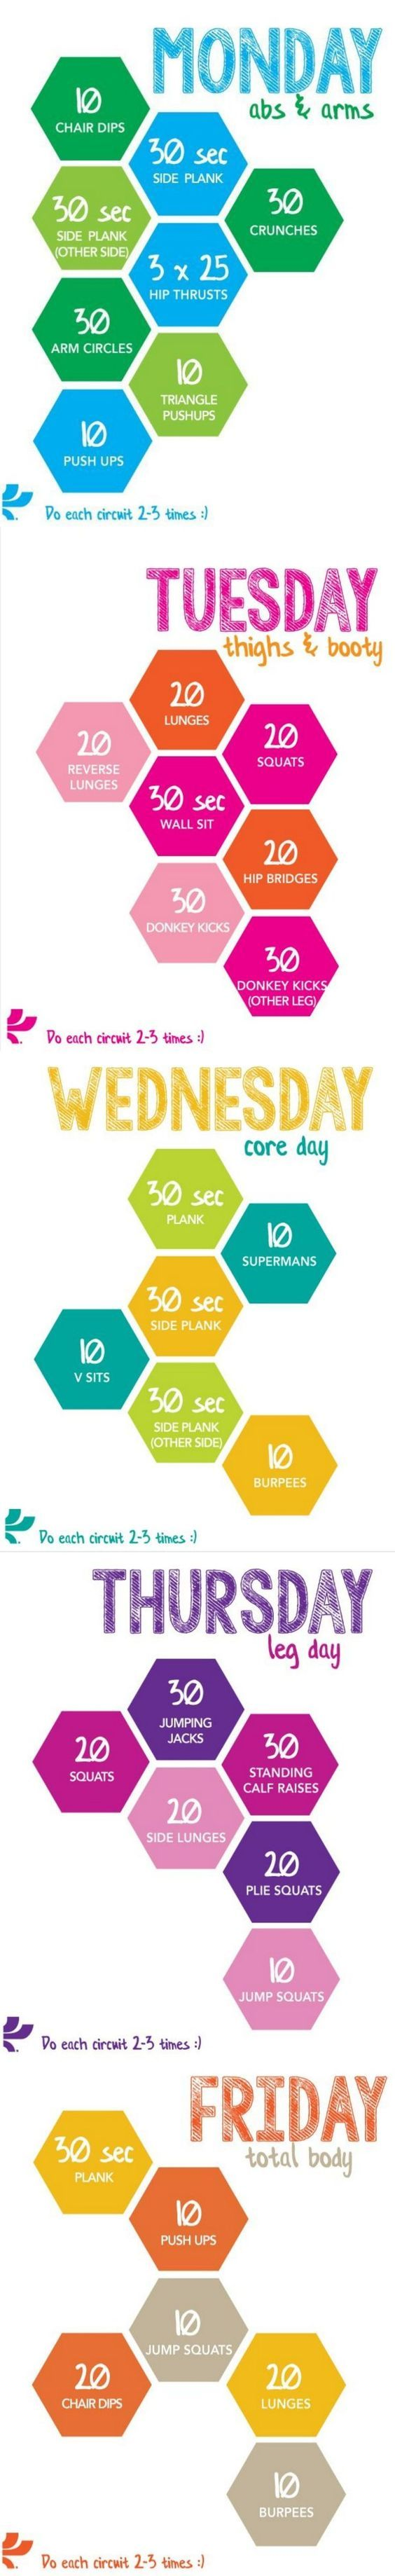 Weekly exercise plan. Lose Weight With Complete Guide. #weightloss